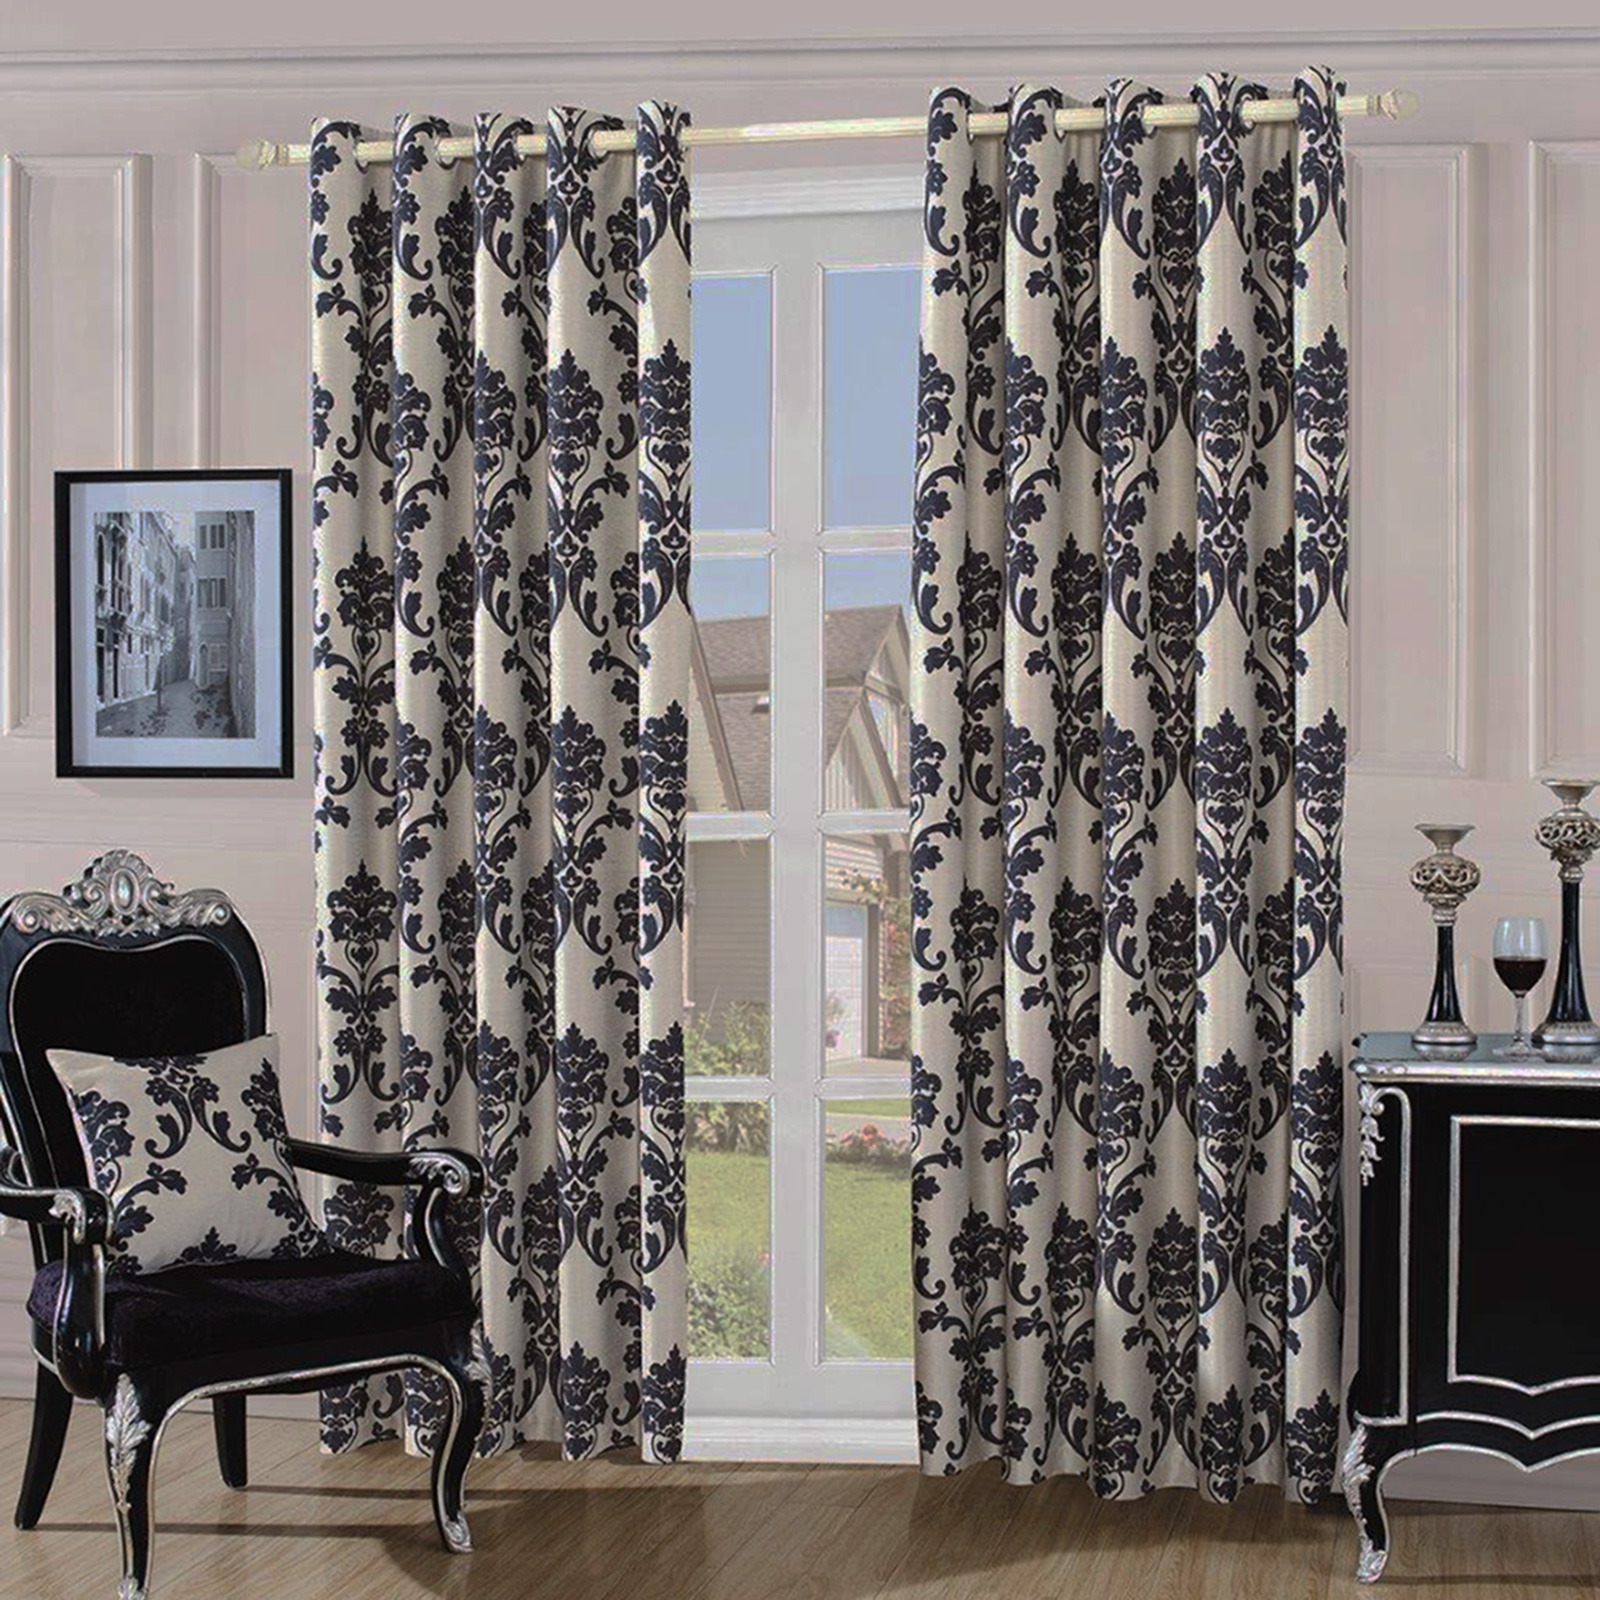 Fully Lined Quality Jacquard Damask Curtains - Ready Made With ...